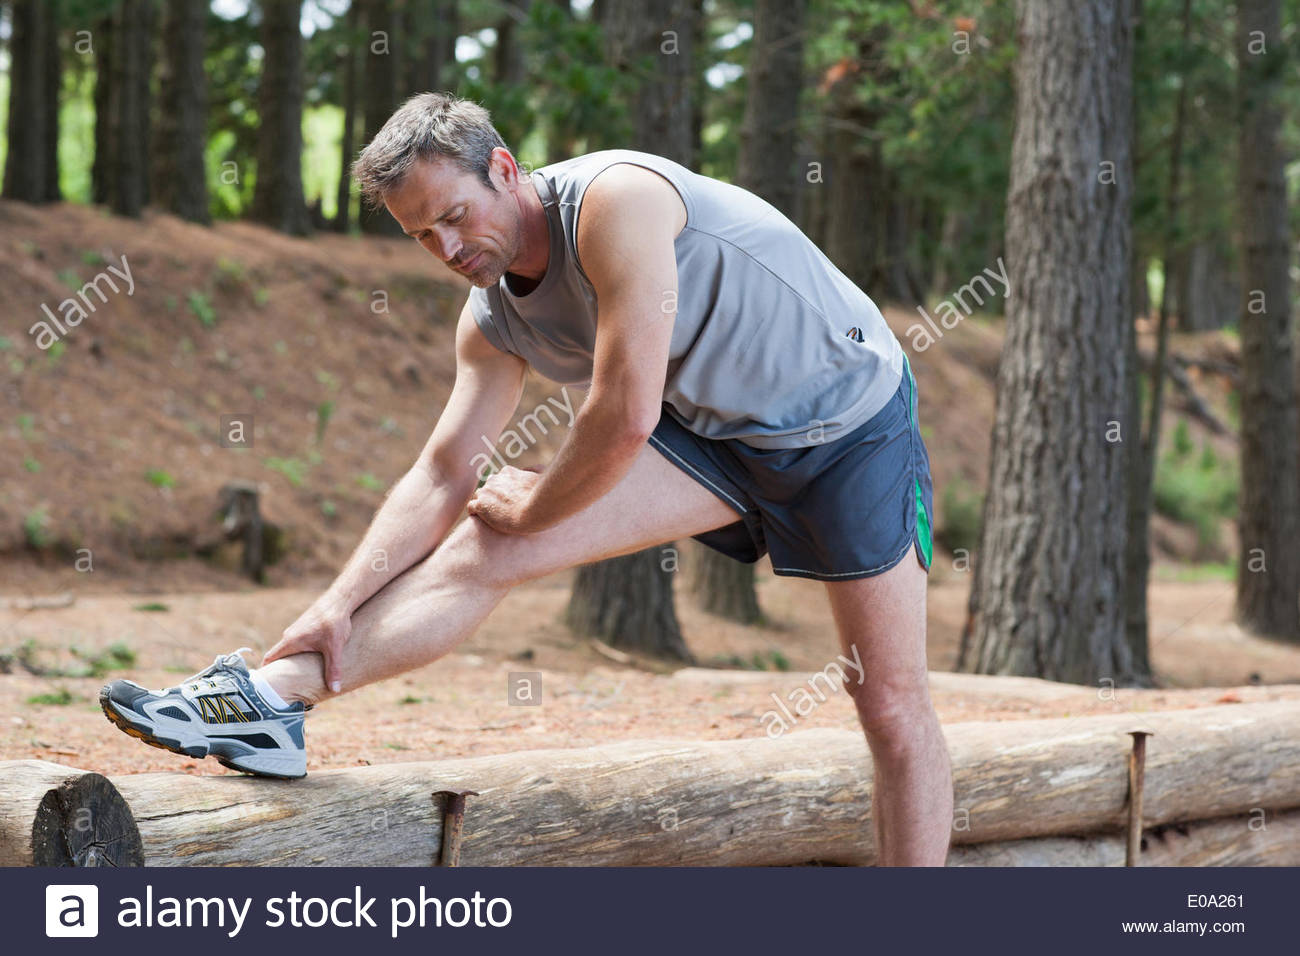 Man stretching before run in forest - Stock Image